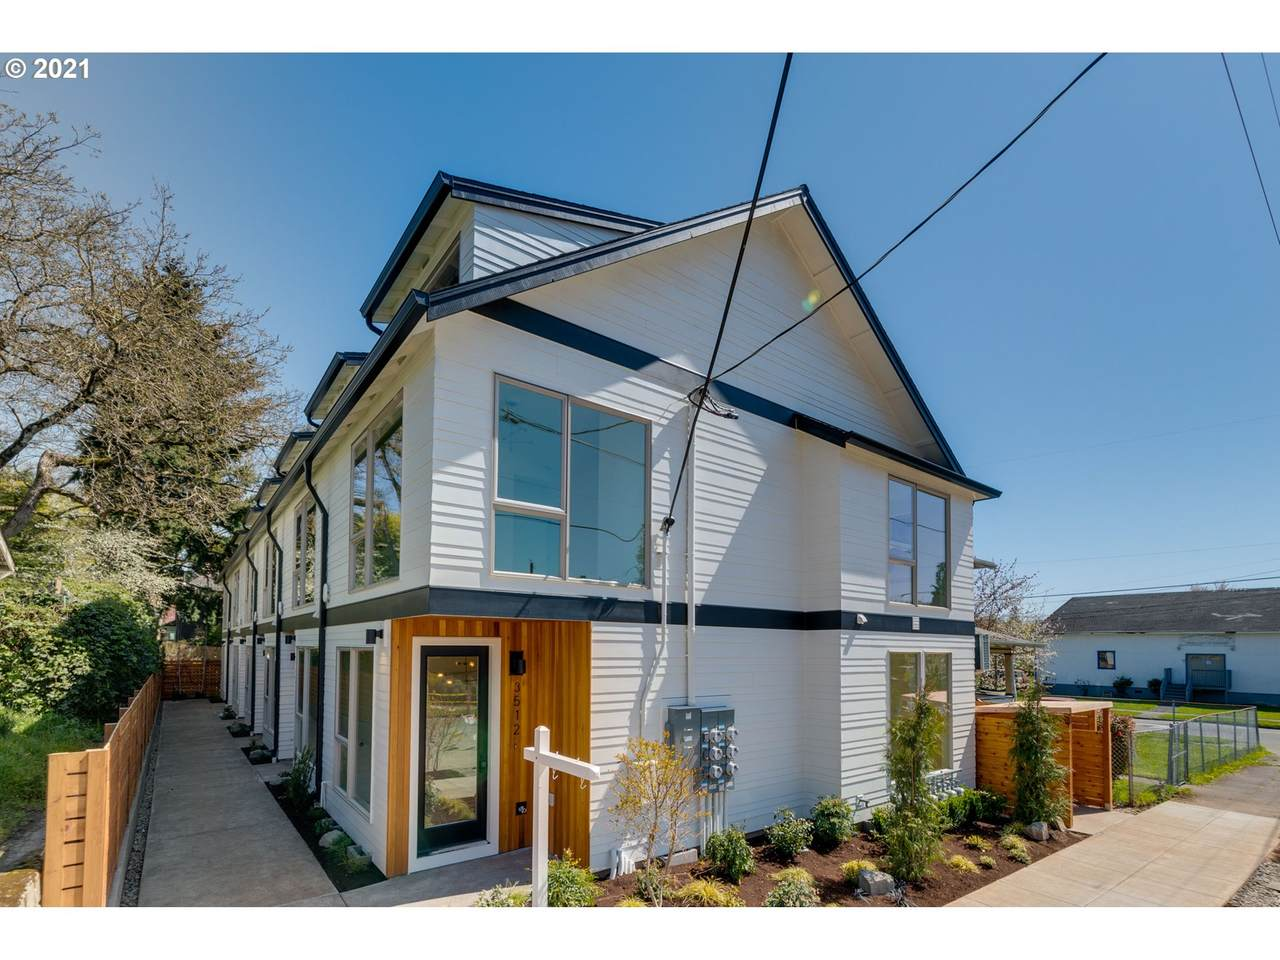 3522 Haight Ave - Photo 1